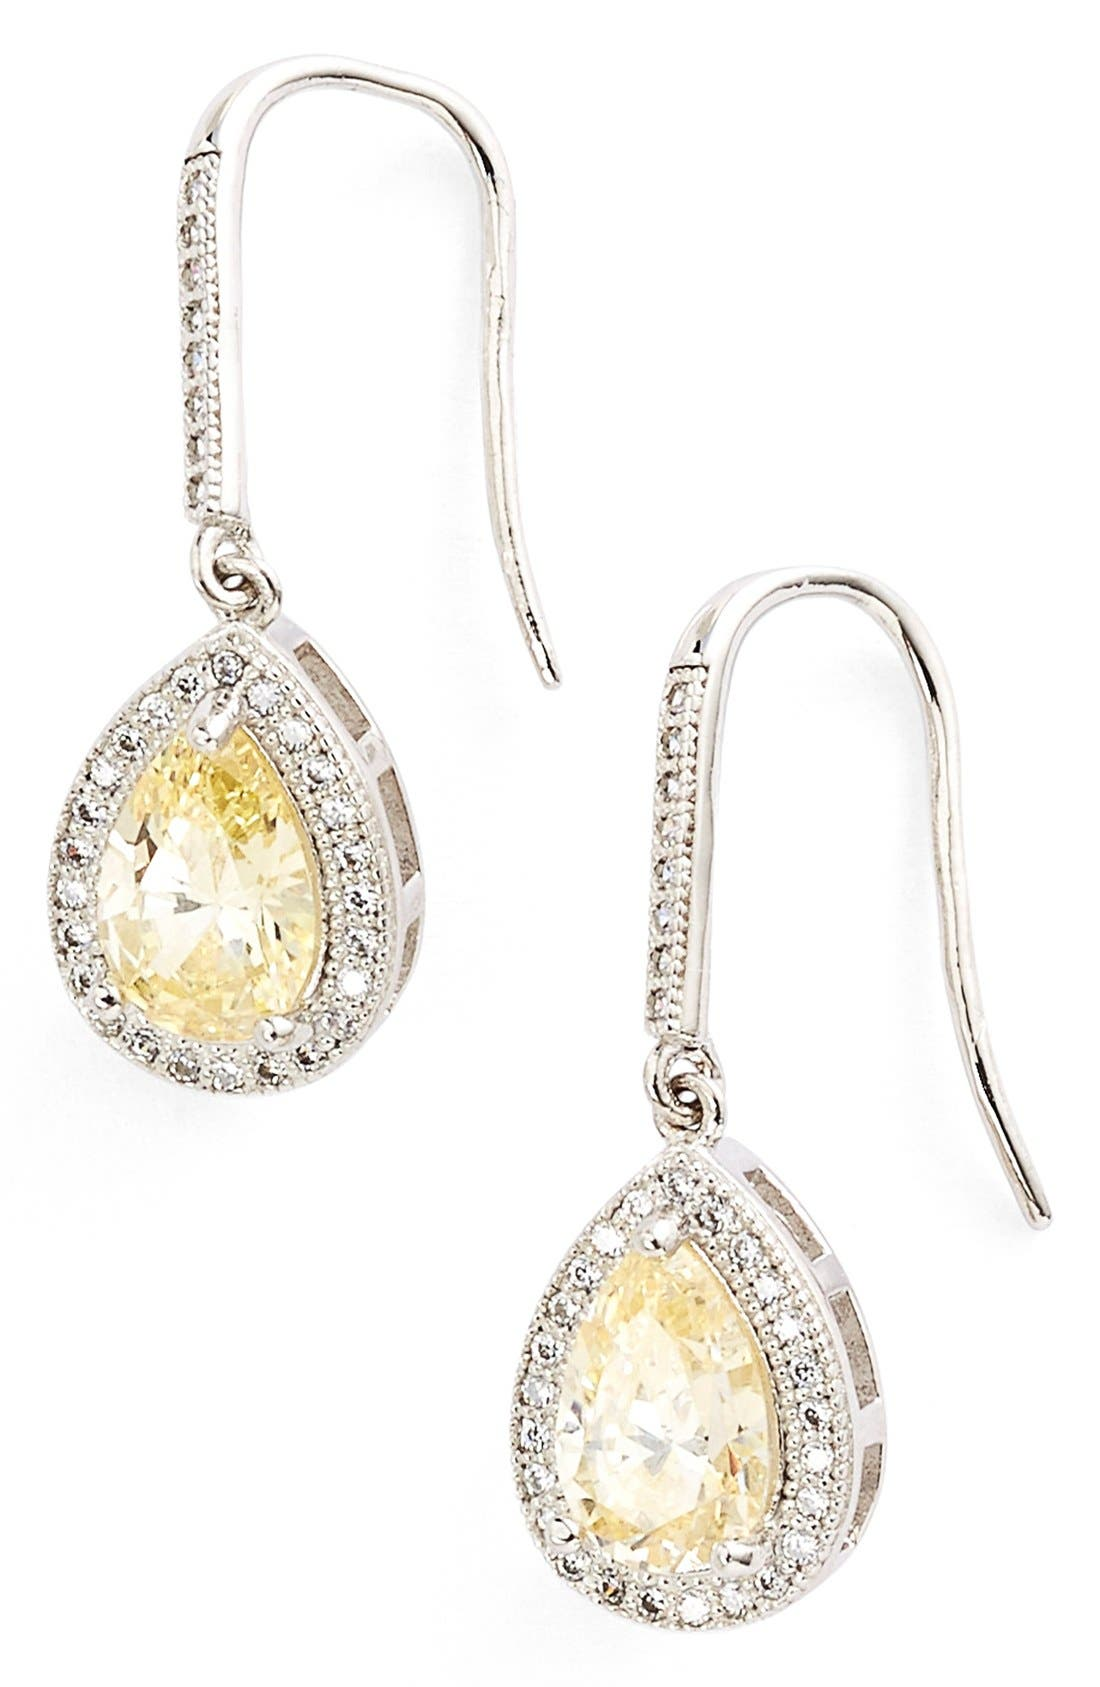 'Lassaire' Canary Drop Earrings,                         Main,                         color, Silver/ Canary Yellow